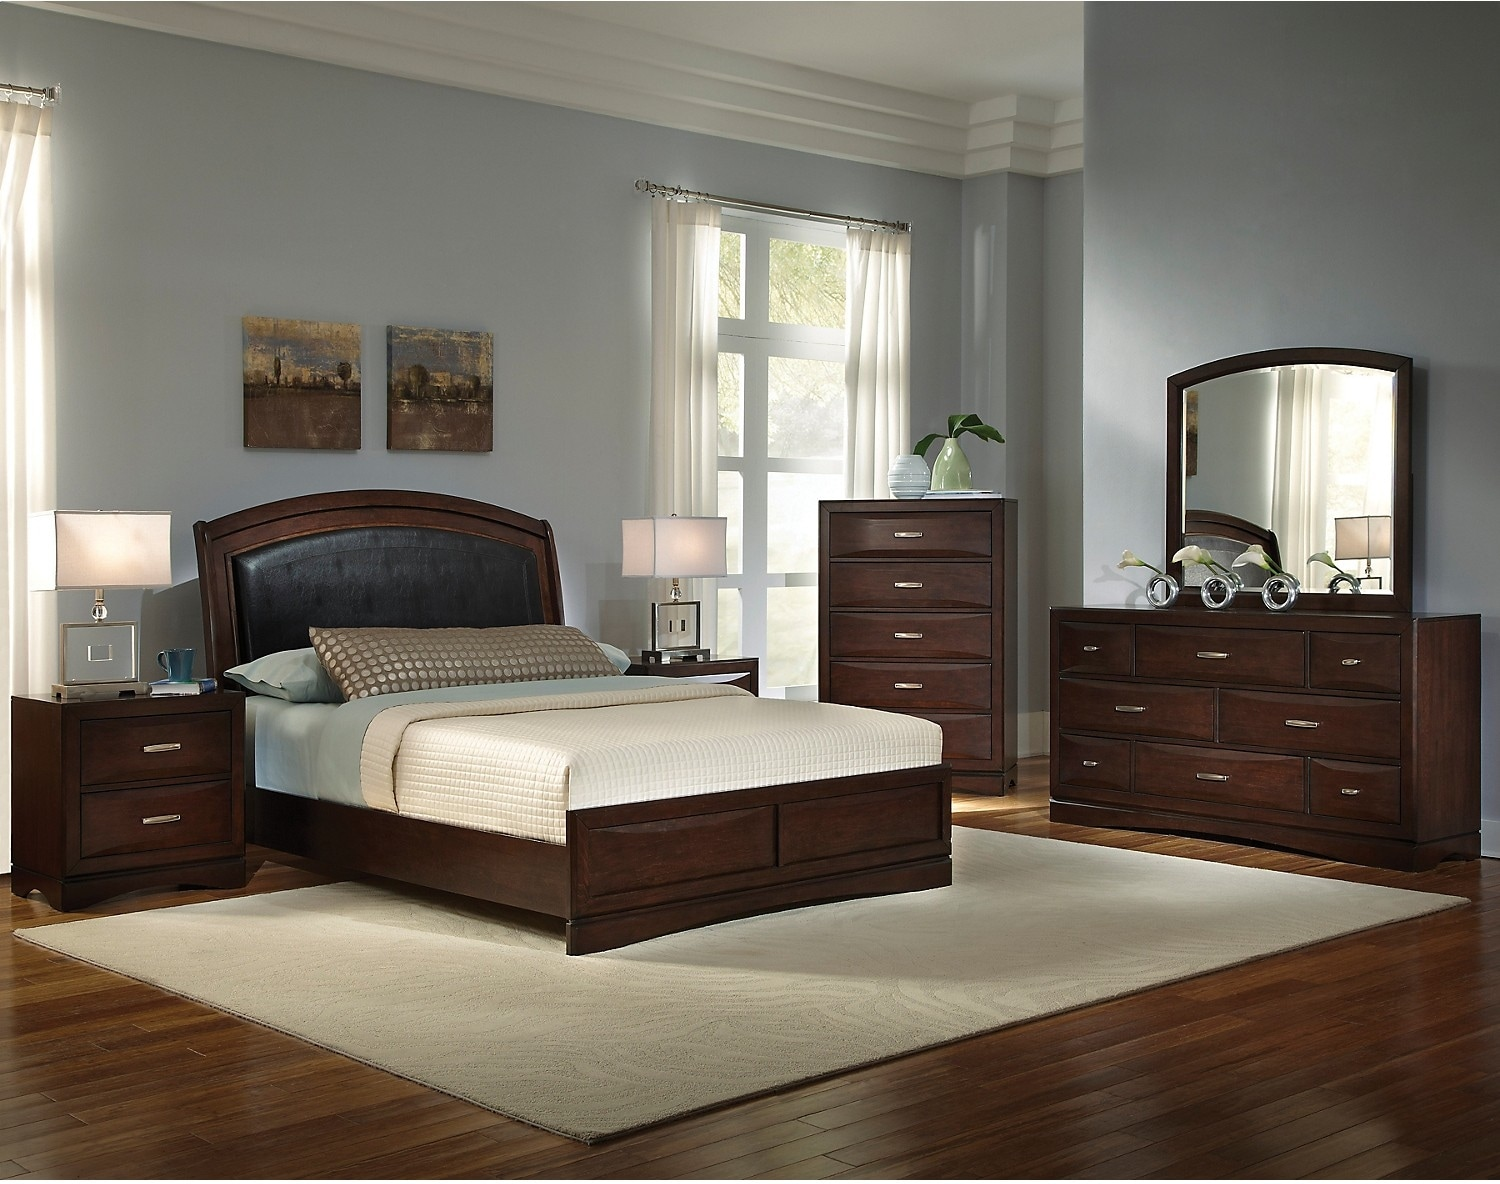 Beverly 8 piece queen bedroom set the brick - Queen bedroom sets ...